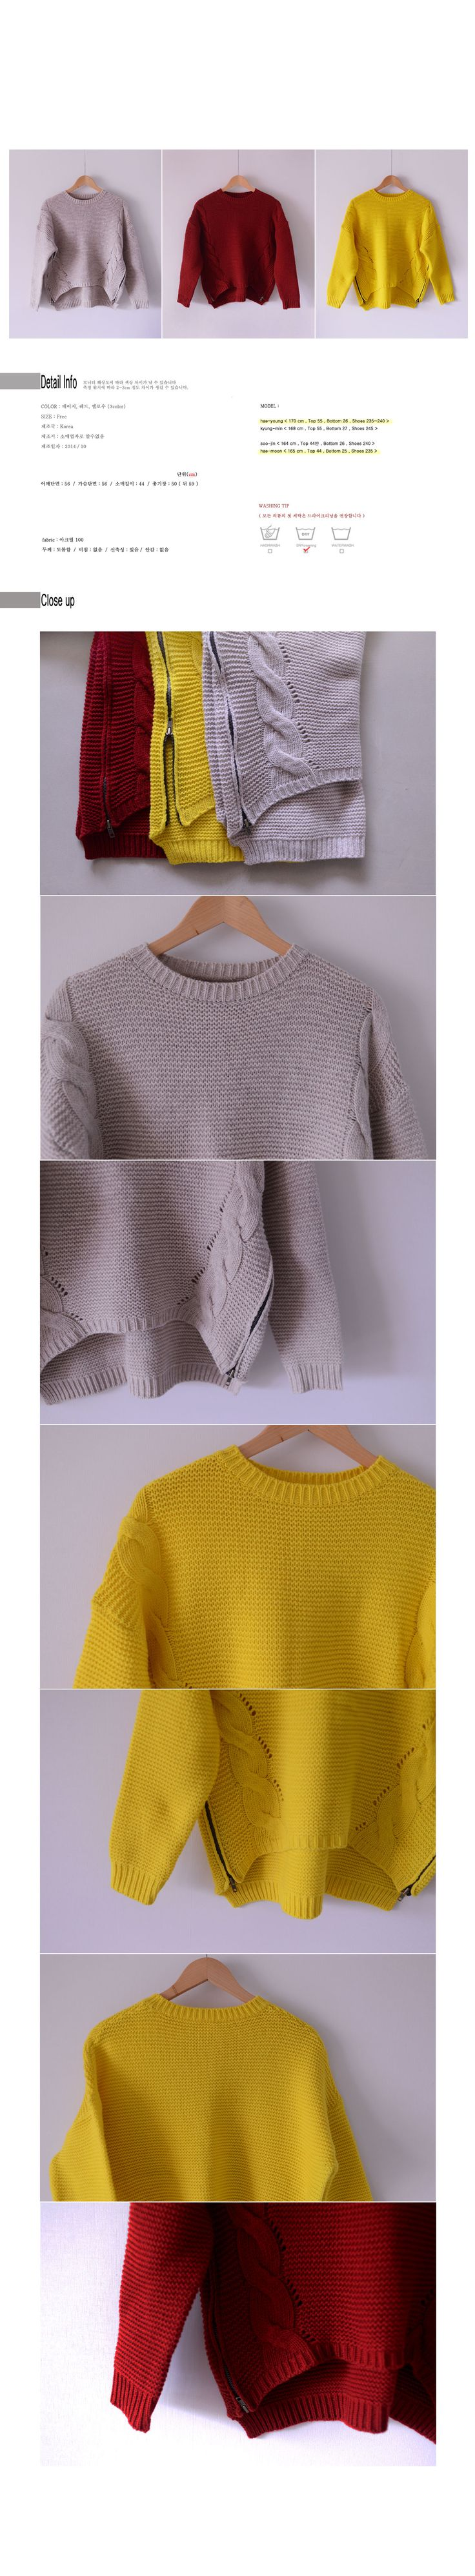 Chunky Cable Zipper Knit - Sweater & Cardigan - Clothing - Genuine Korean style fashion from Korea